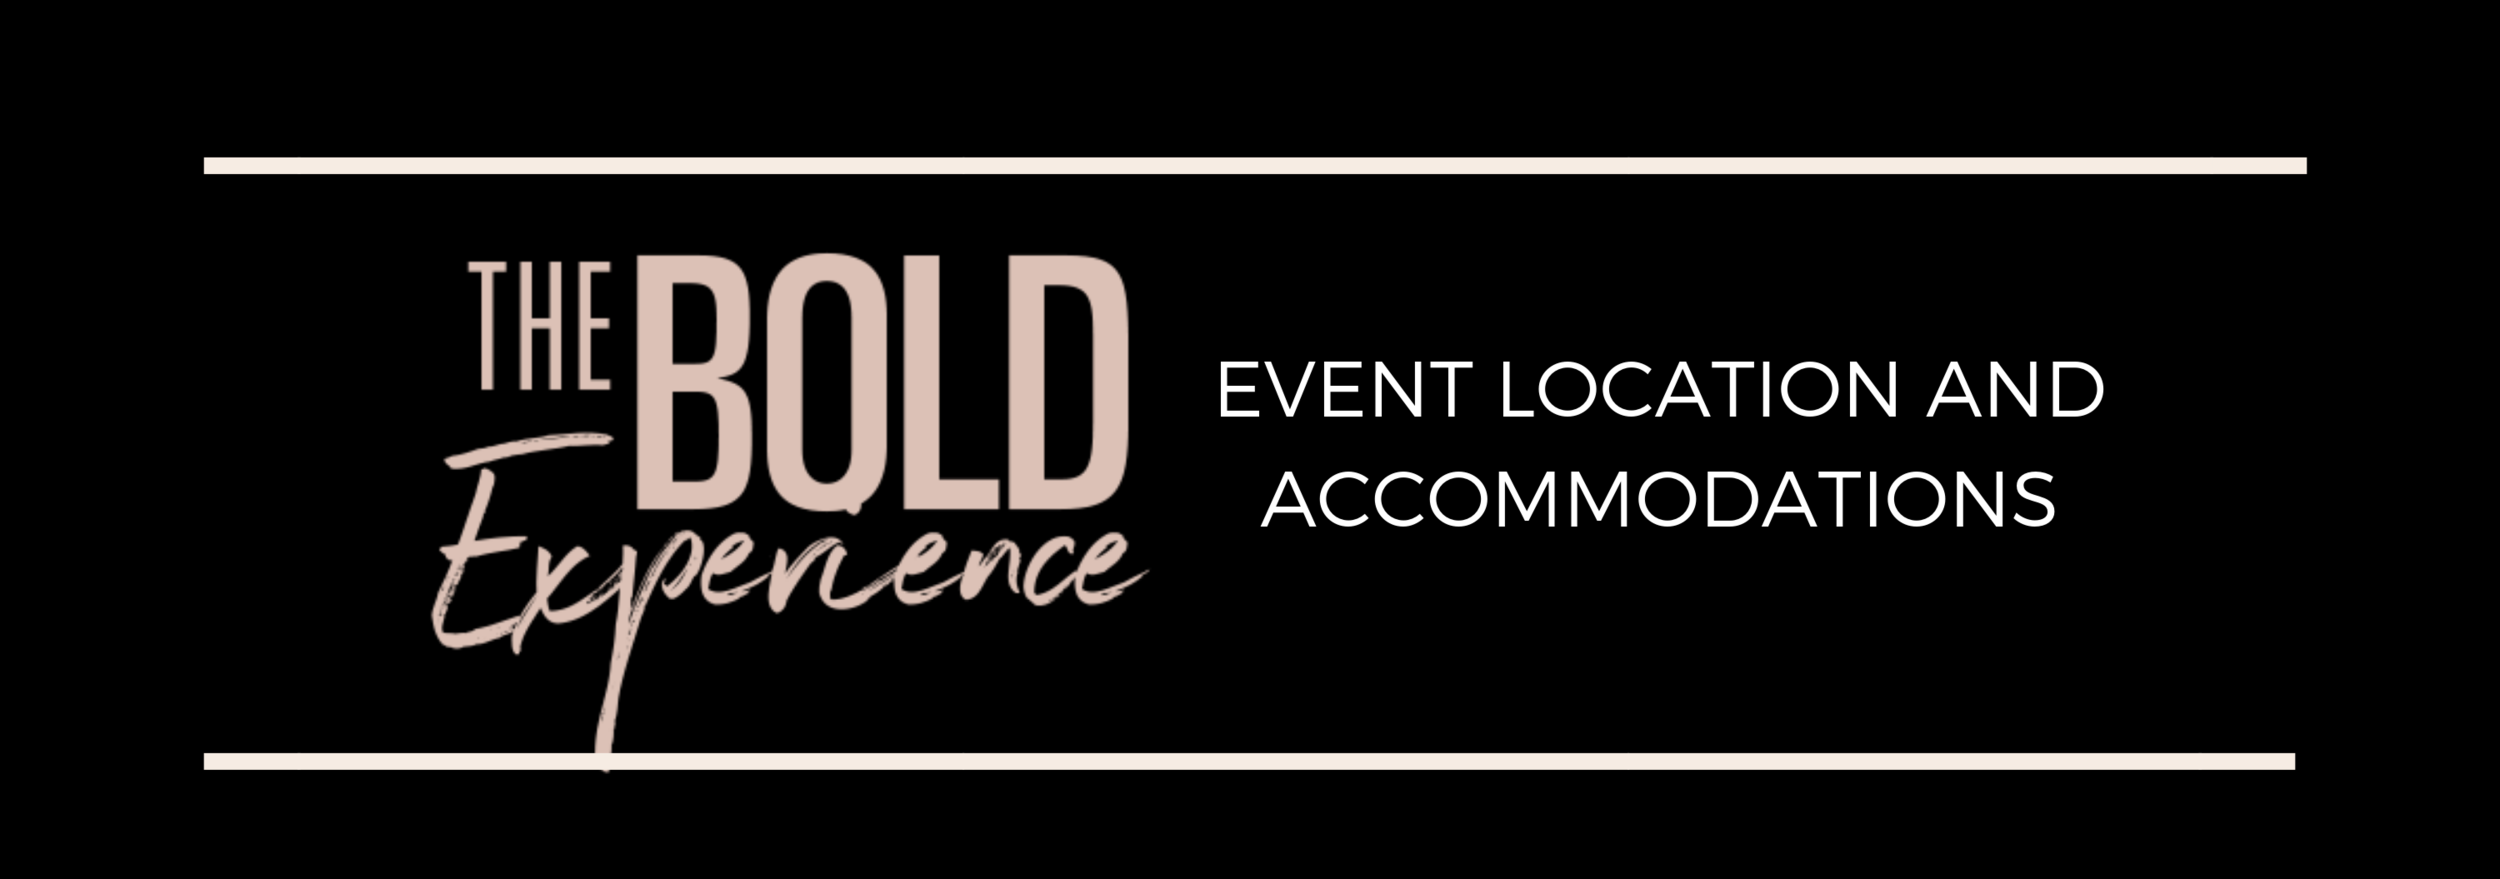 EVENT LOCATION AND ACCOMMODATIONS.png